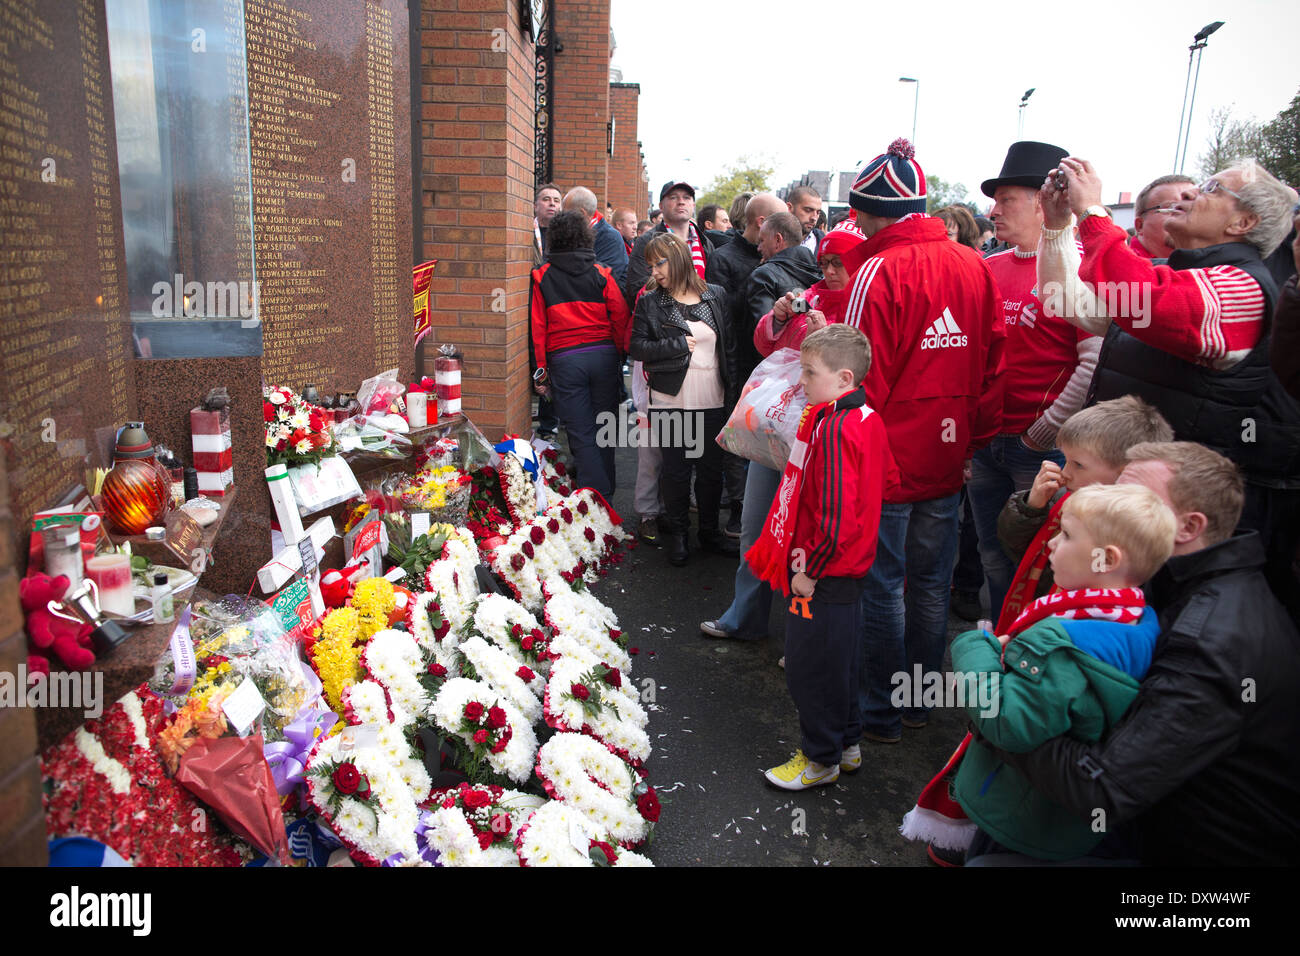 Fans lay tributes for the 96 Liverpool supporters who died at Hillsborough, Liverpool Memorial,  Anfield Stadium, Liverpool, UK - Stock Image